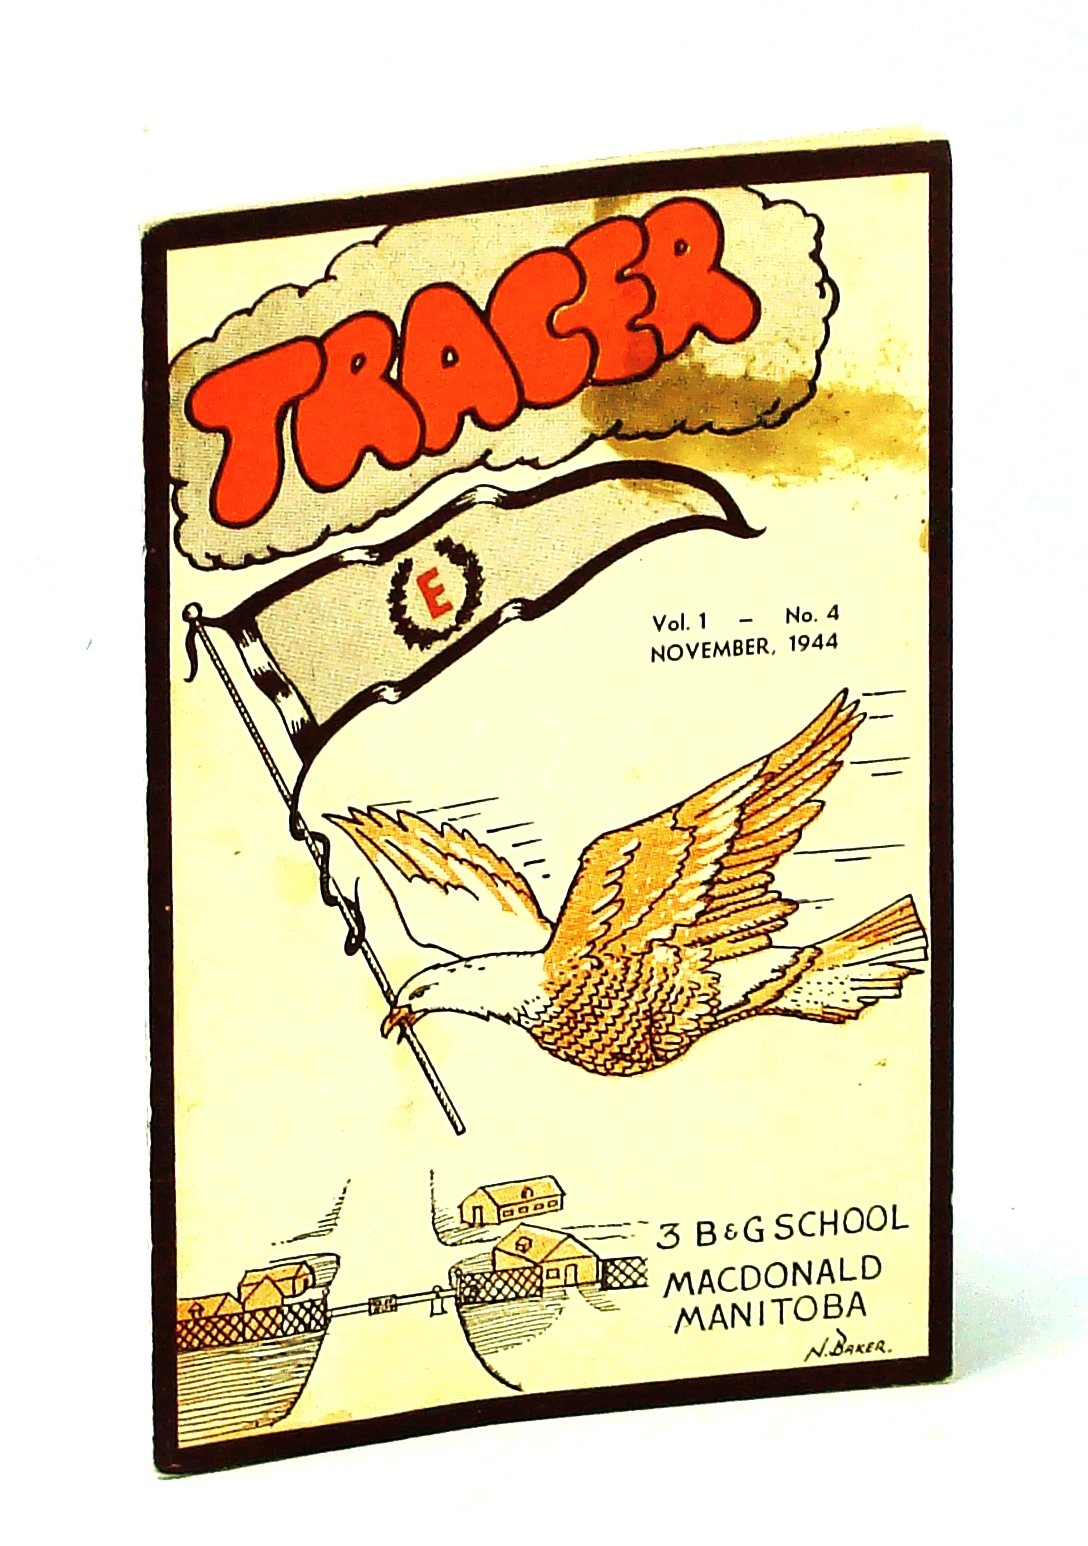 Image for Tracer Magazine, Vol. 1, No. 4, November (Nov.), 1944 - Monthly Publication of No. 3 Bombing and Gunnery (B & G) School , R.C.A.F.